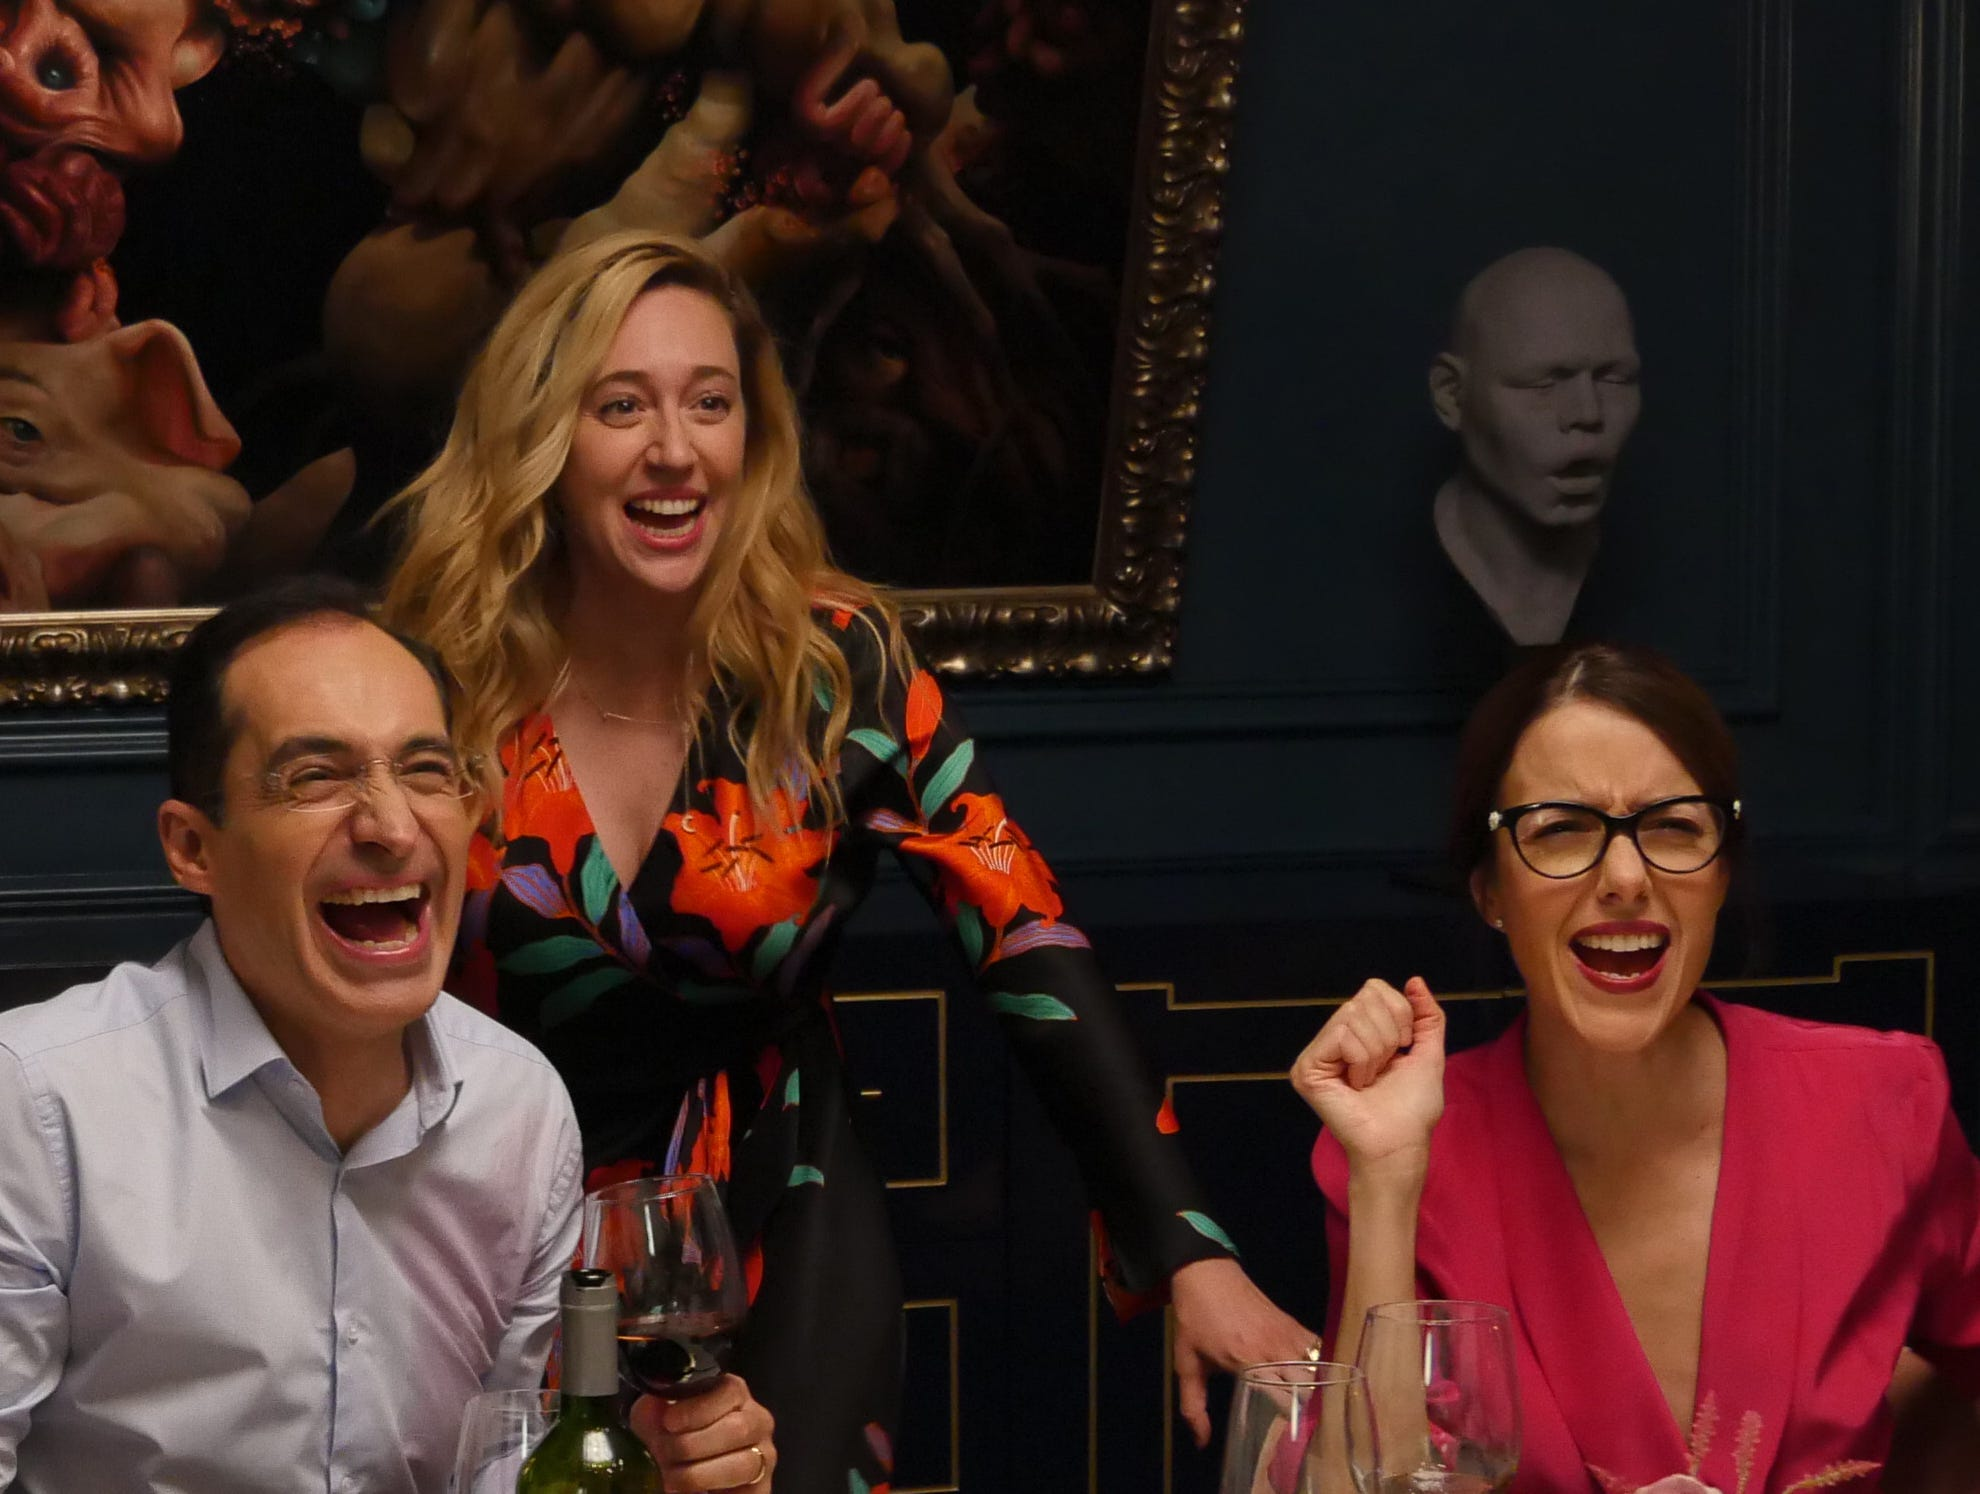 """Bruno Bichir, Ana Claudia Talancón (center) and Cecilia Suárez star in """"Perfectos Desconocidos."""" From the review: """"The dialogue snaps with precision and cringe-worthy humor; at times, you feel like you're having one of those awkward moments in which you watch a couple bicker."""" (four stars)"""